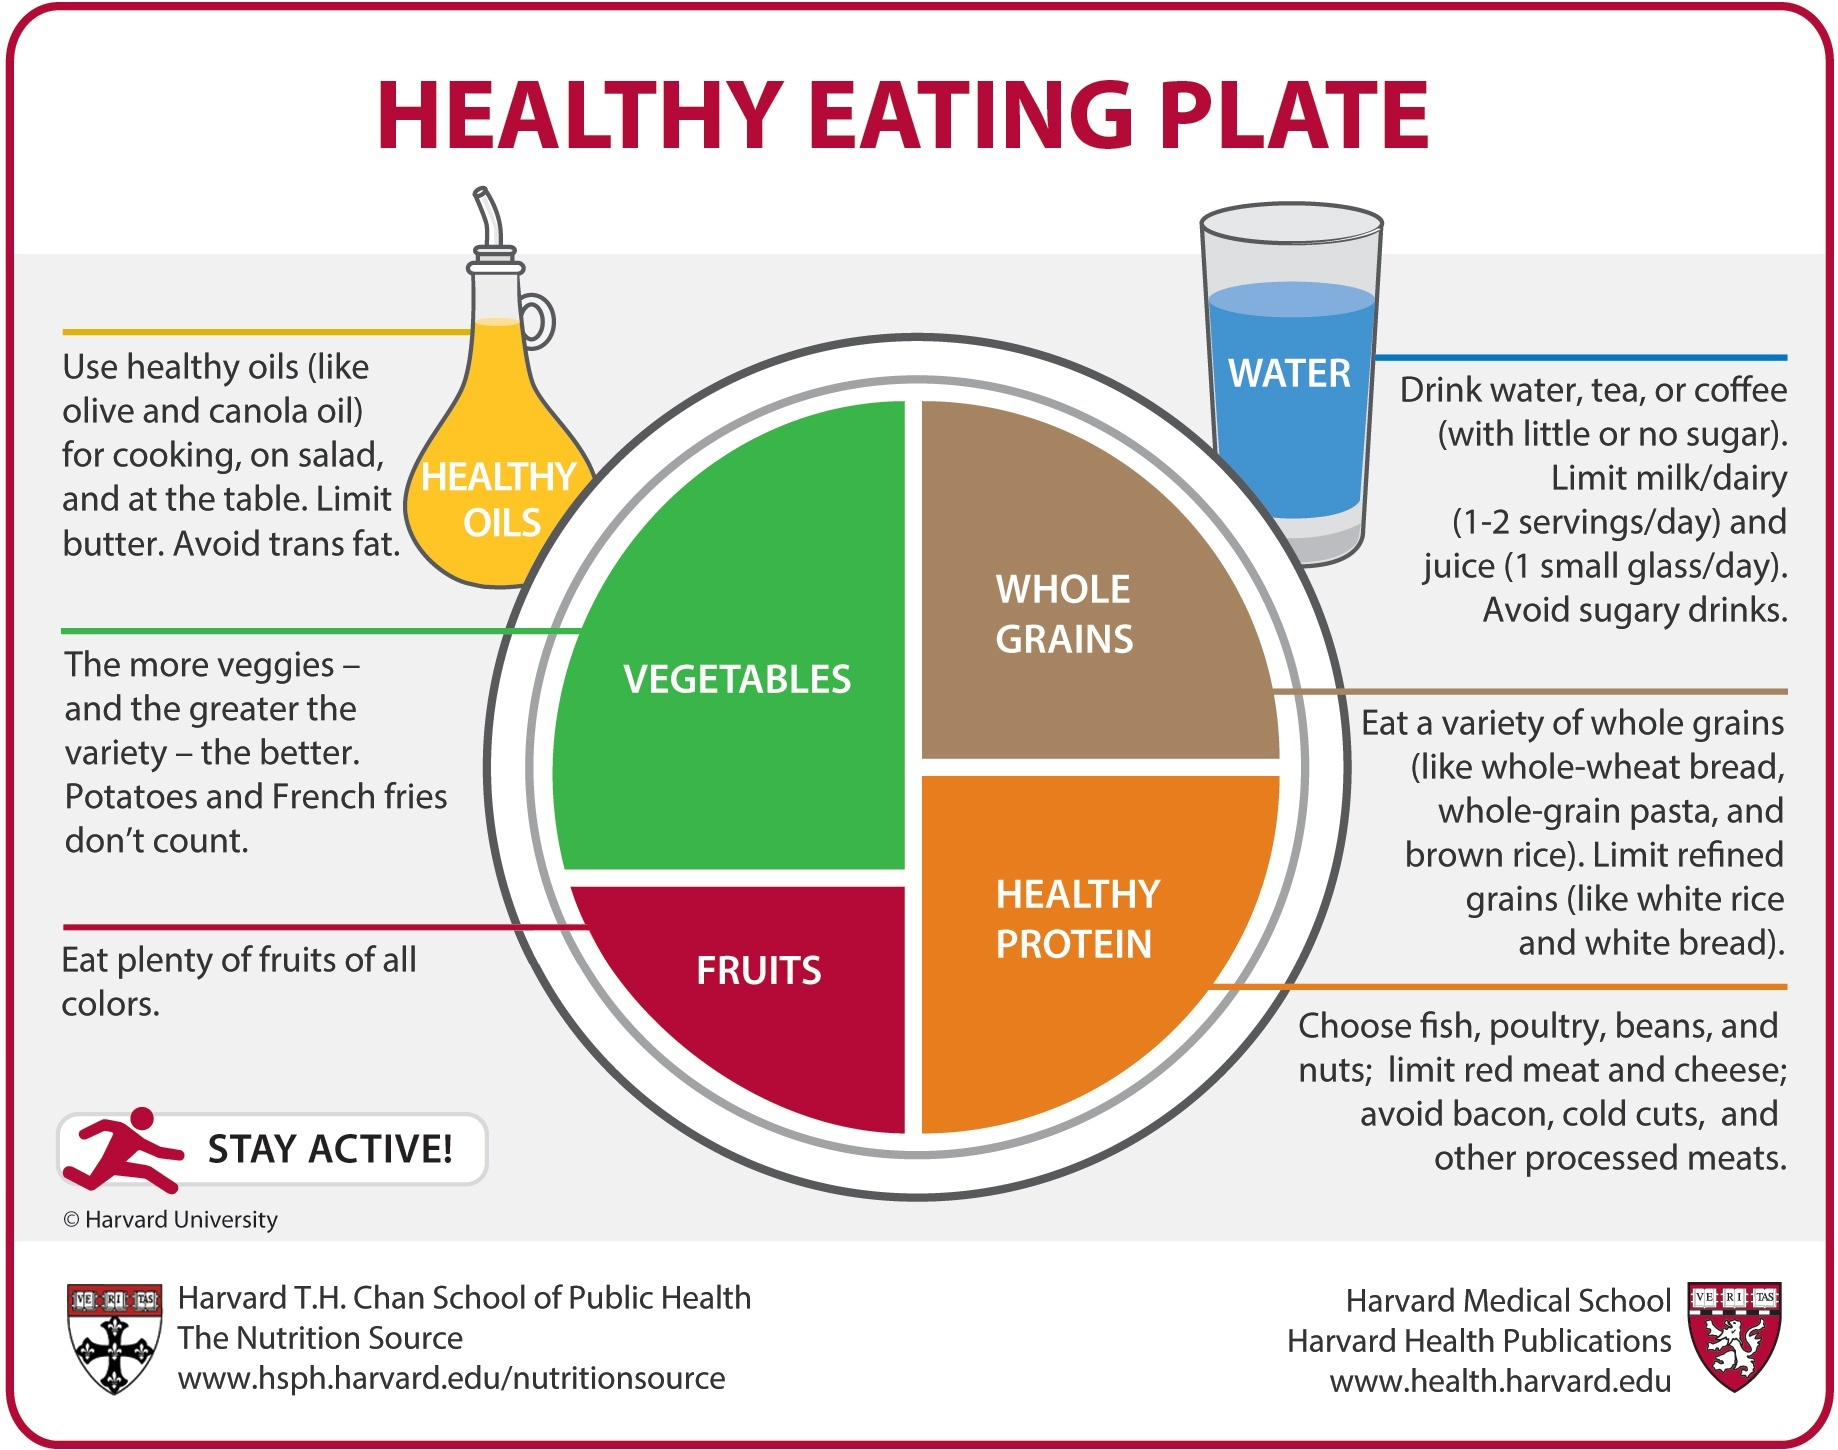 Healthy Eating Plate by Harvard School of Public Health